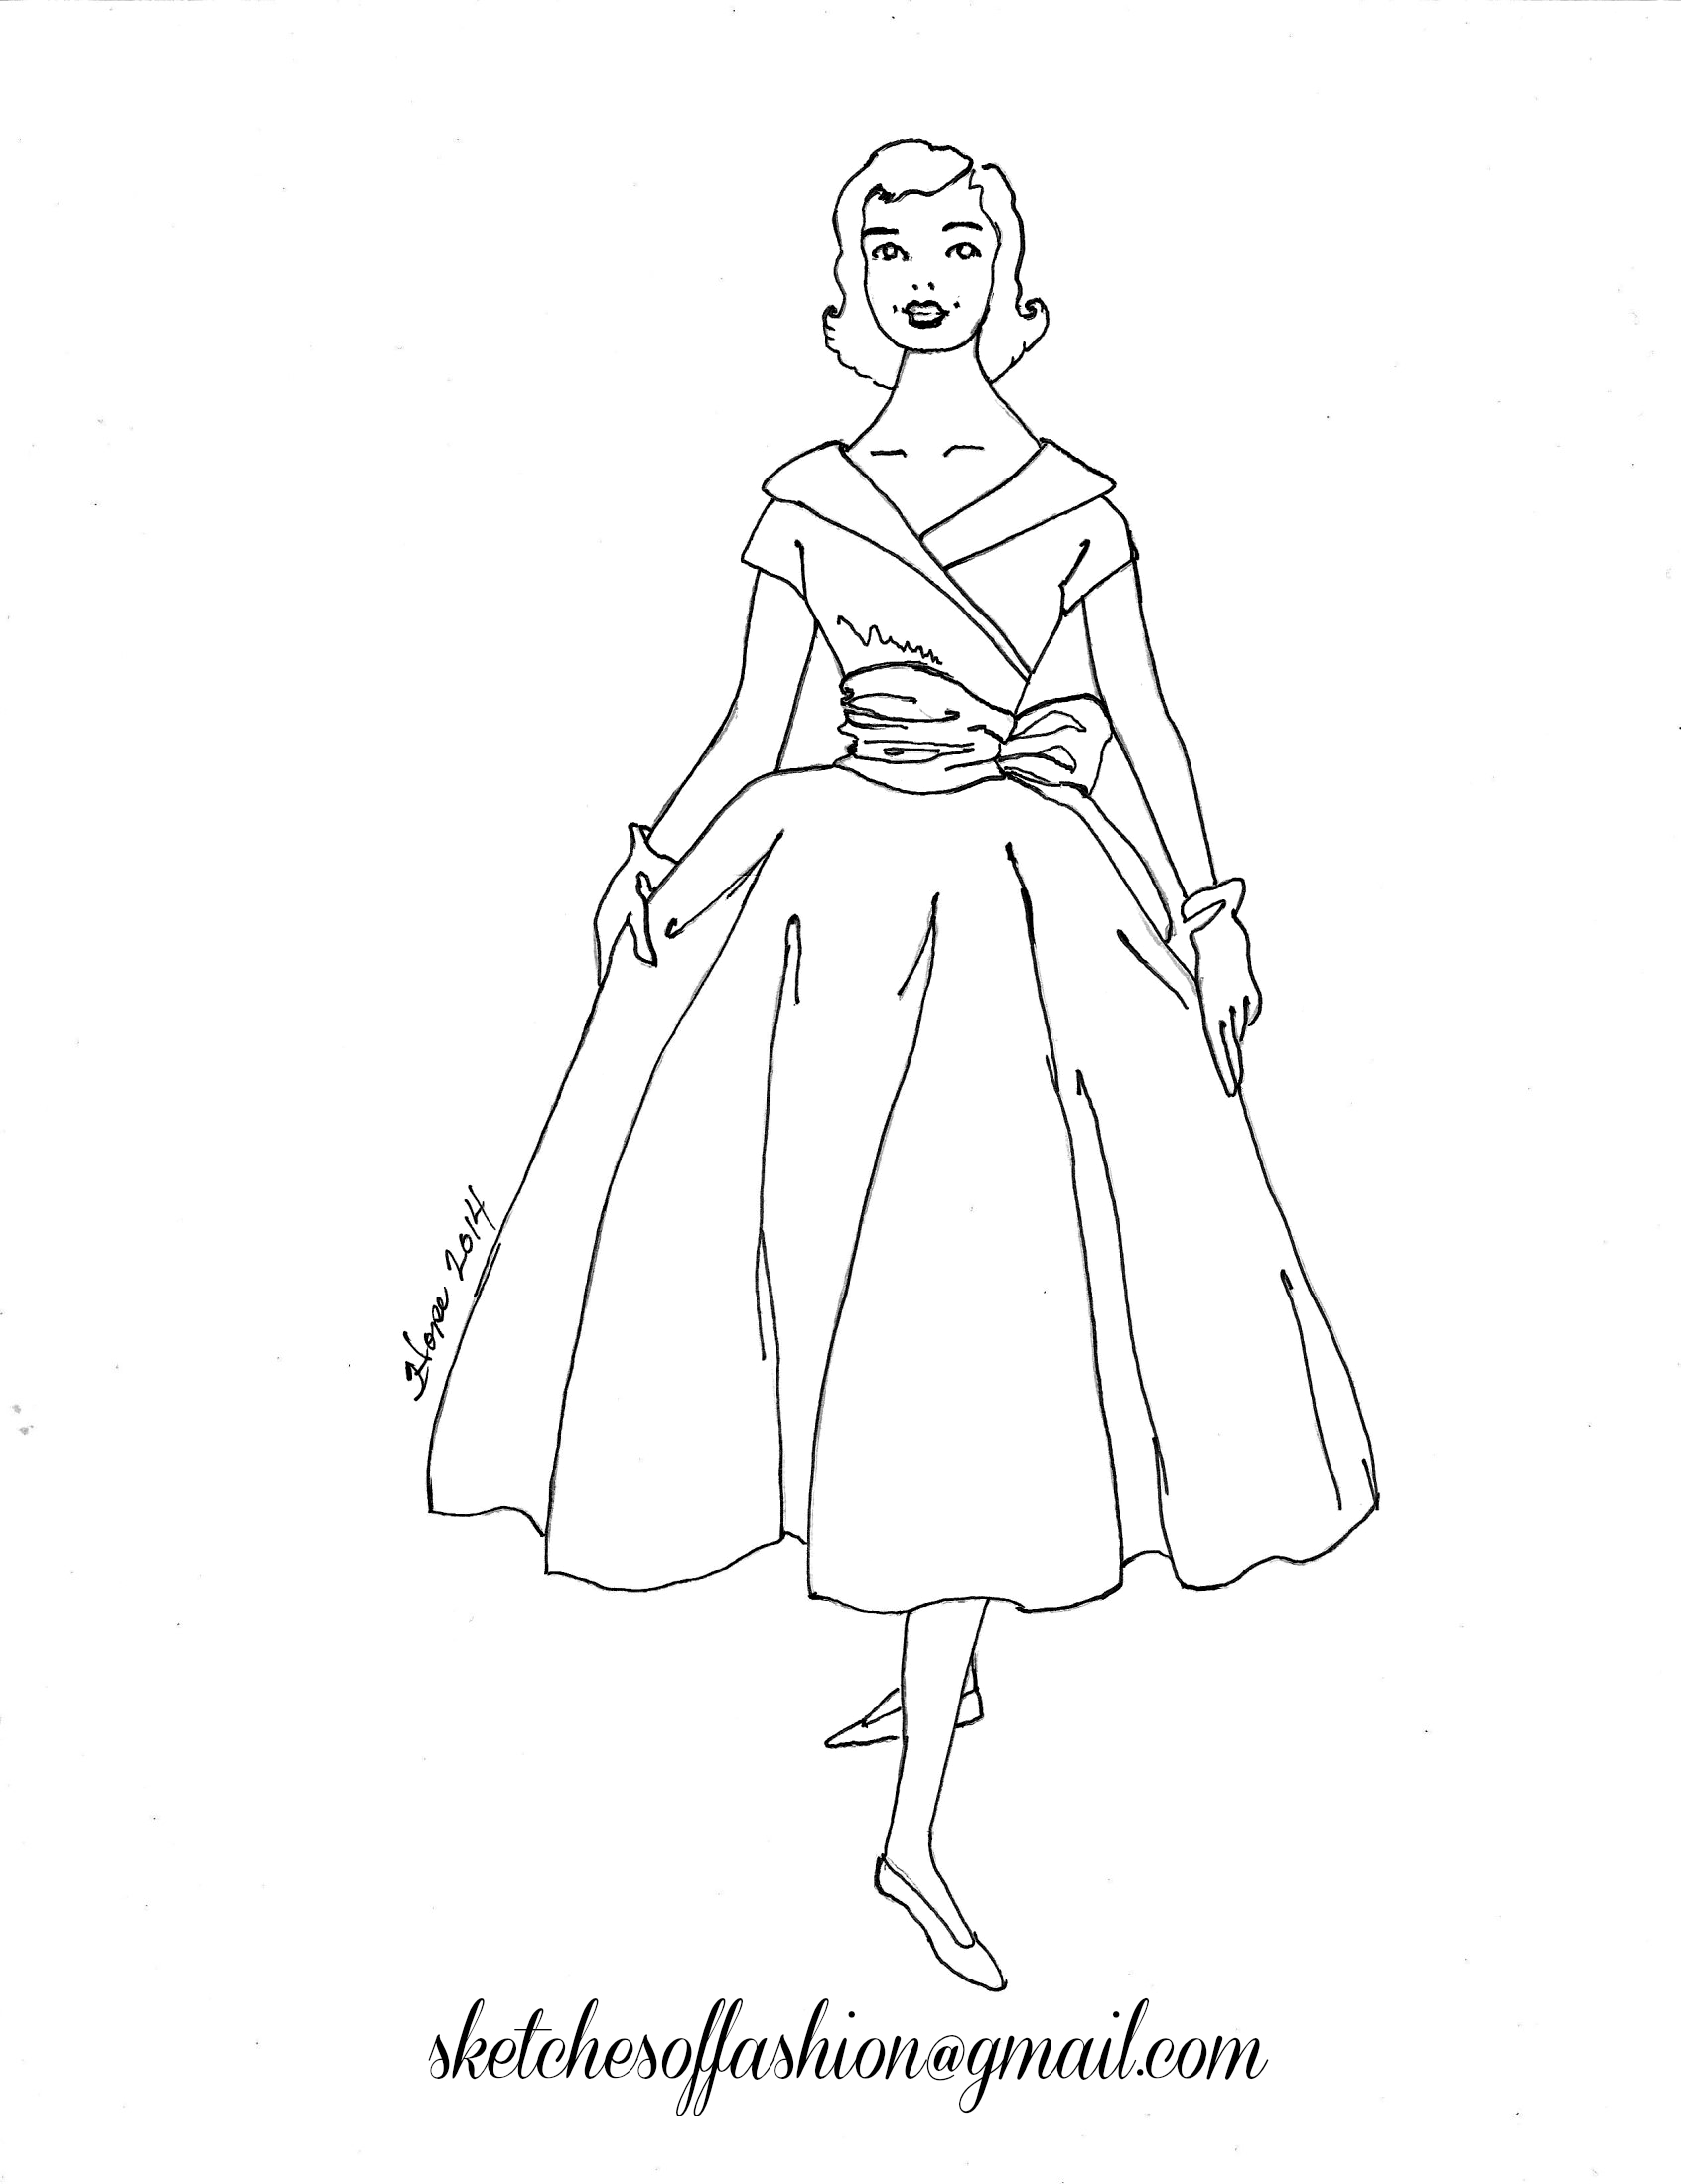 1950 coloring pages photo - 1